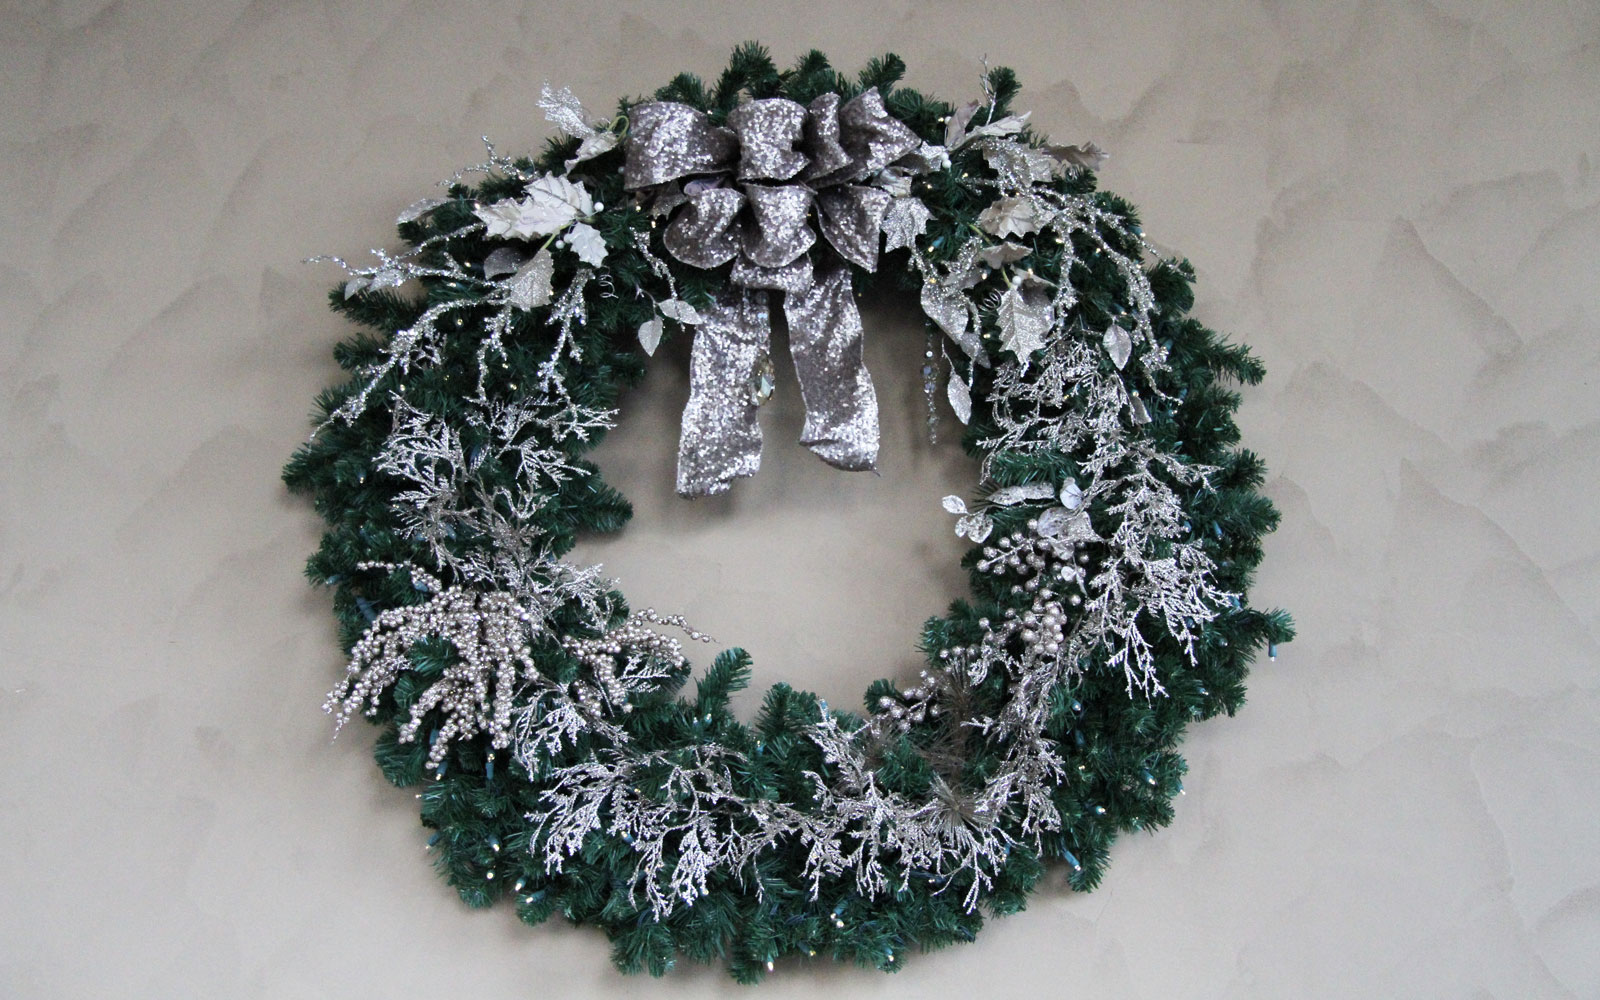 Four Seasons Wreath